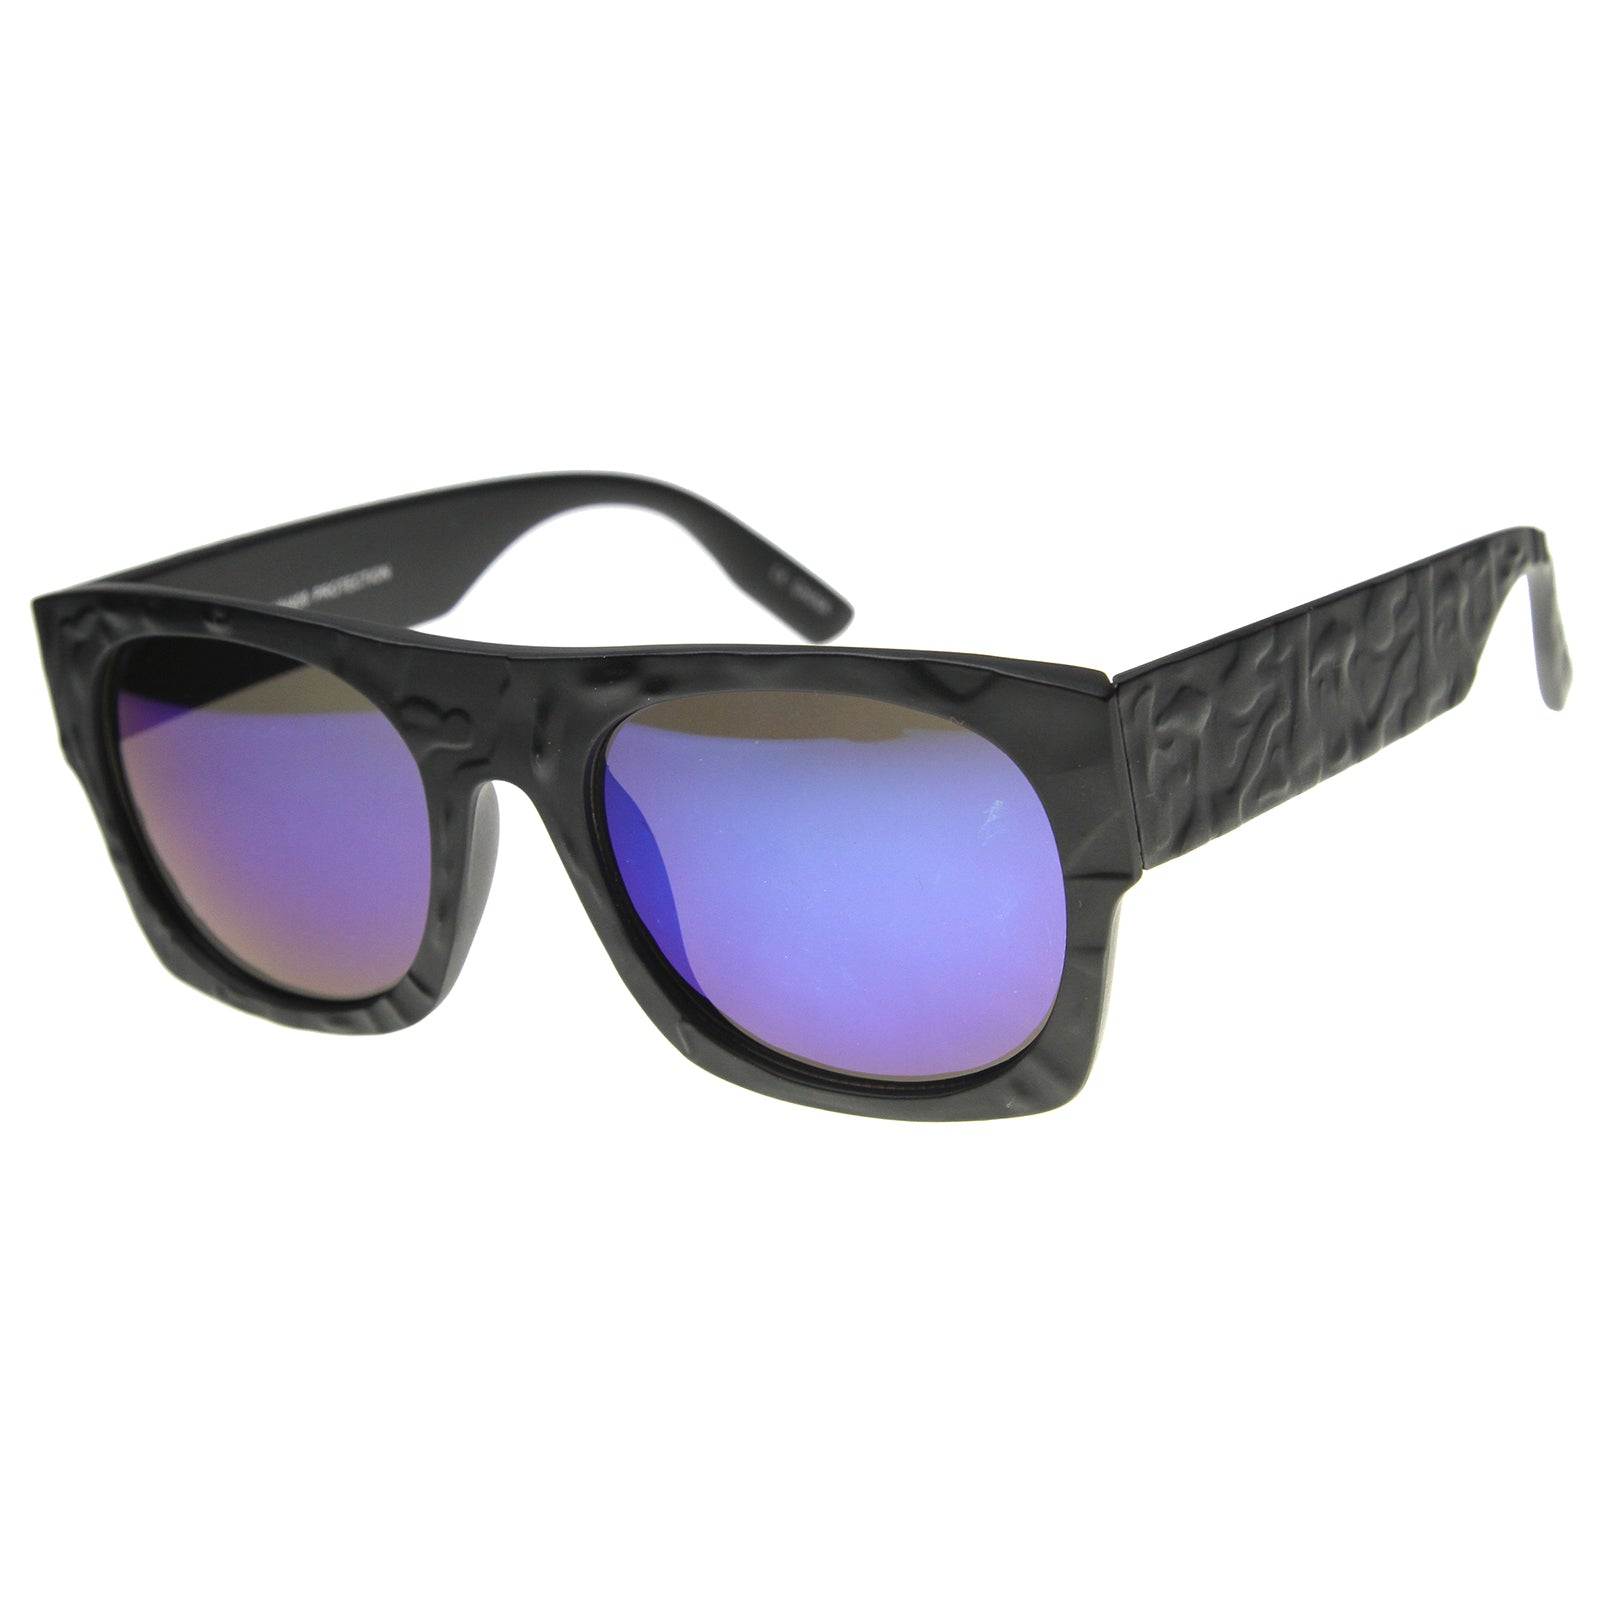 Unisex Rectangular Sunglasses With UV400 Protected Mirrored Lens - sunglass.la - 1